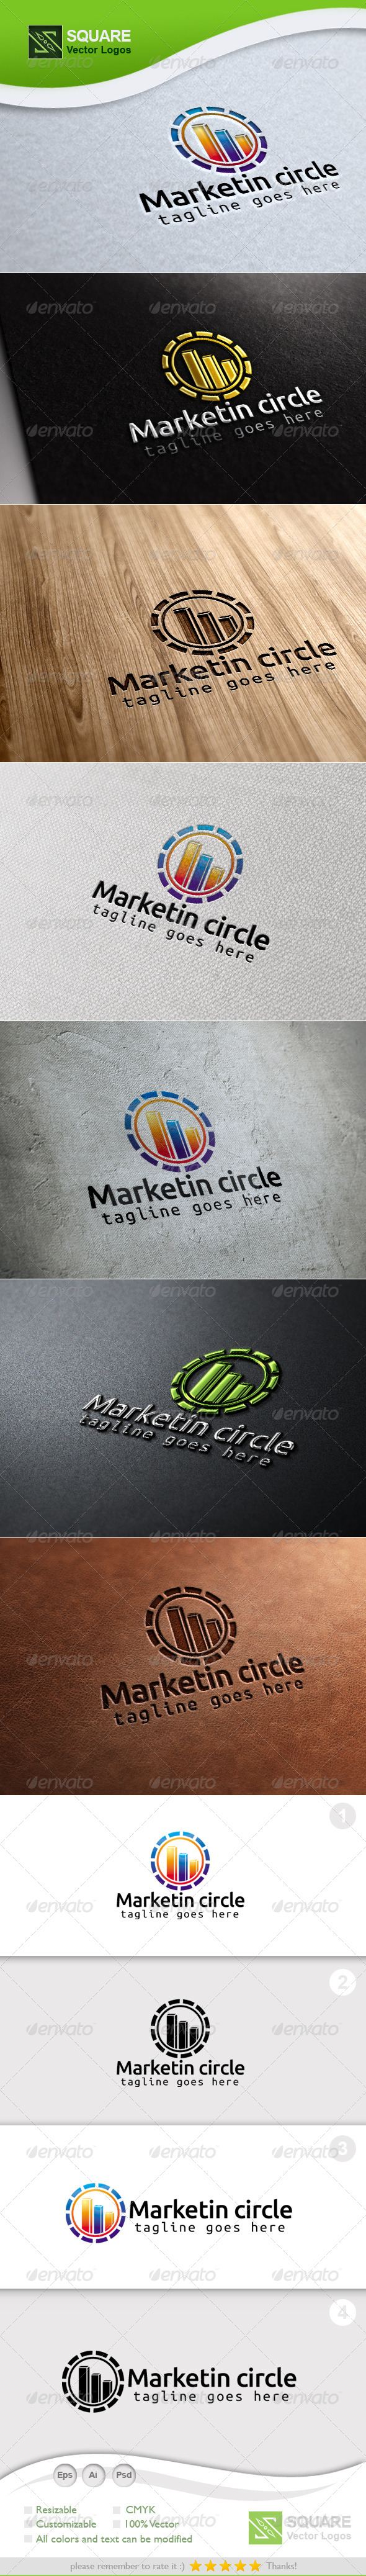 GraphicRiver Market Circle Vector Logo Template 7192209